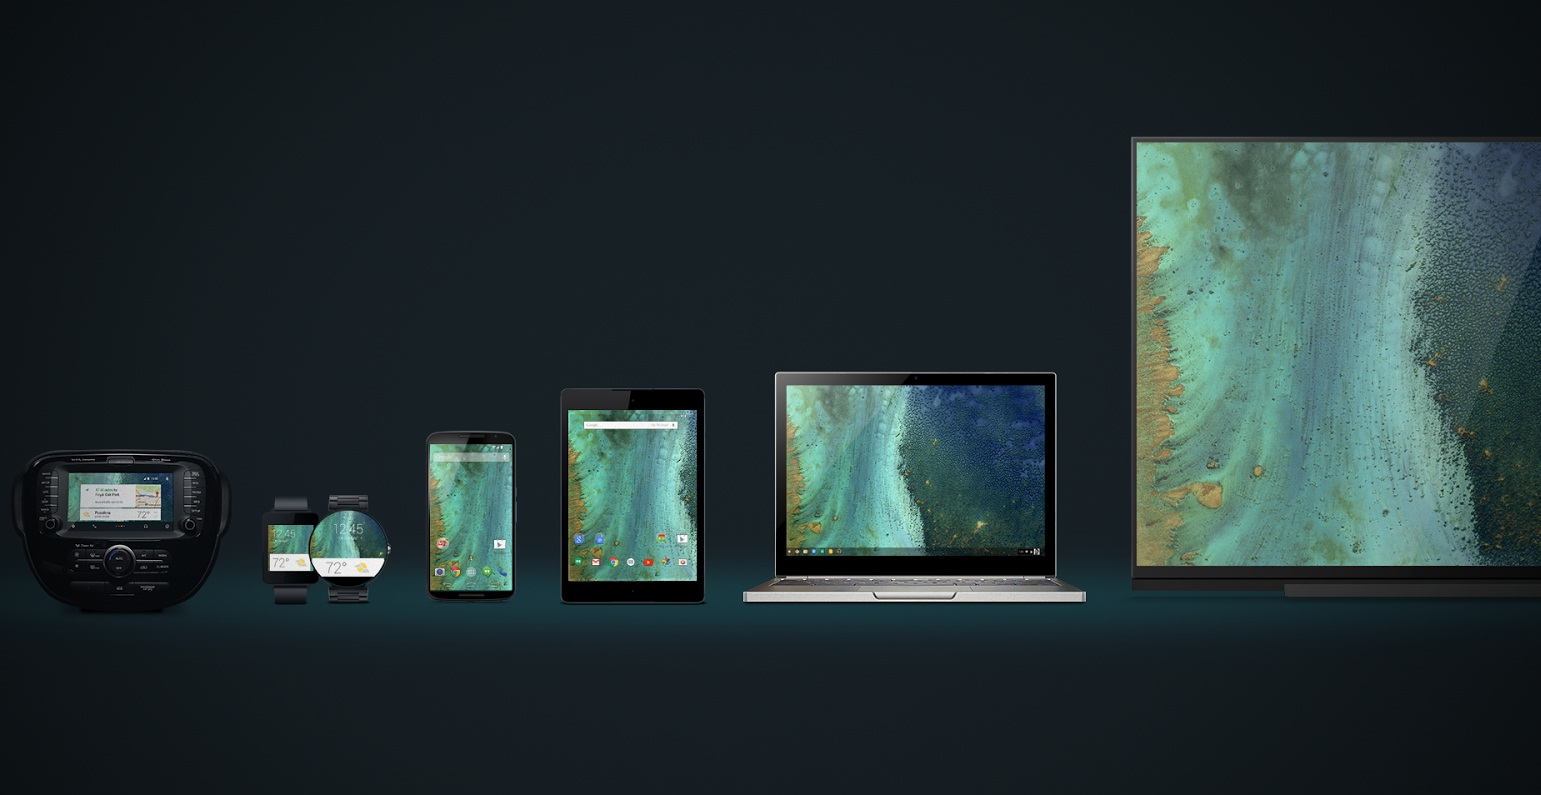 Image Result For Wallpapers And Backgrounds Apks Android Apk